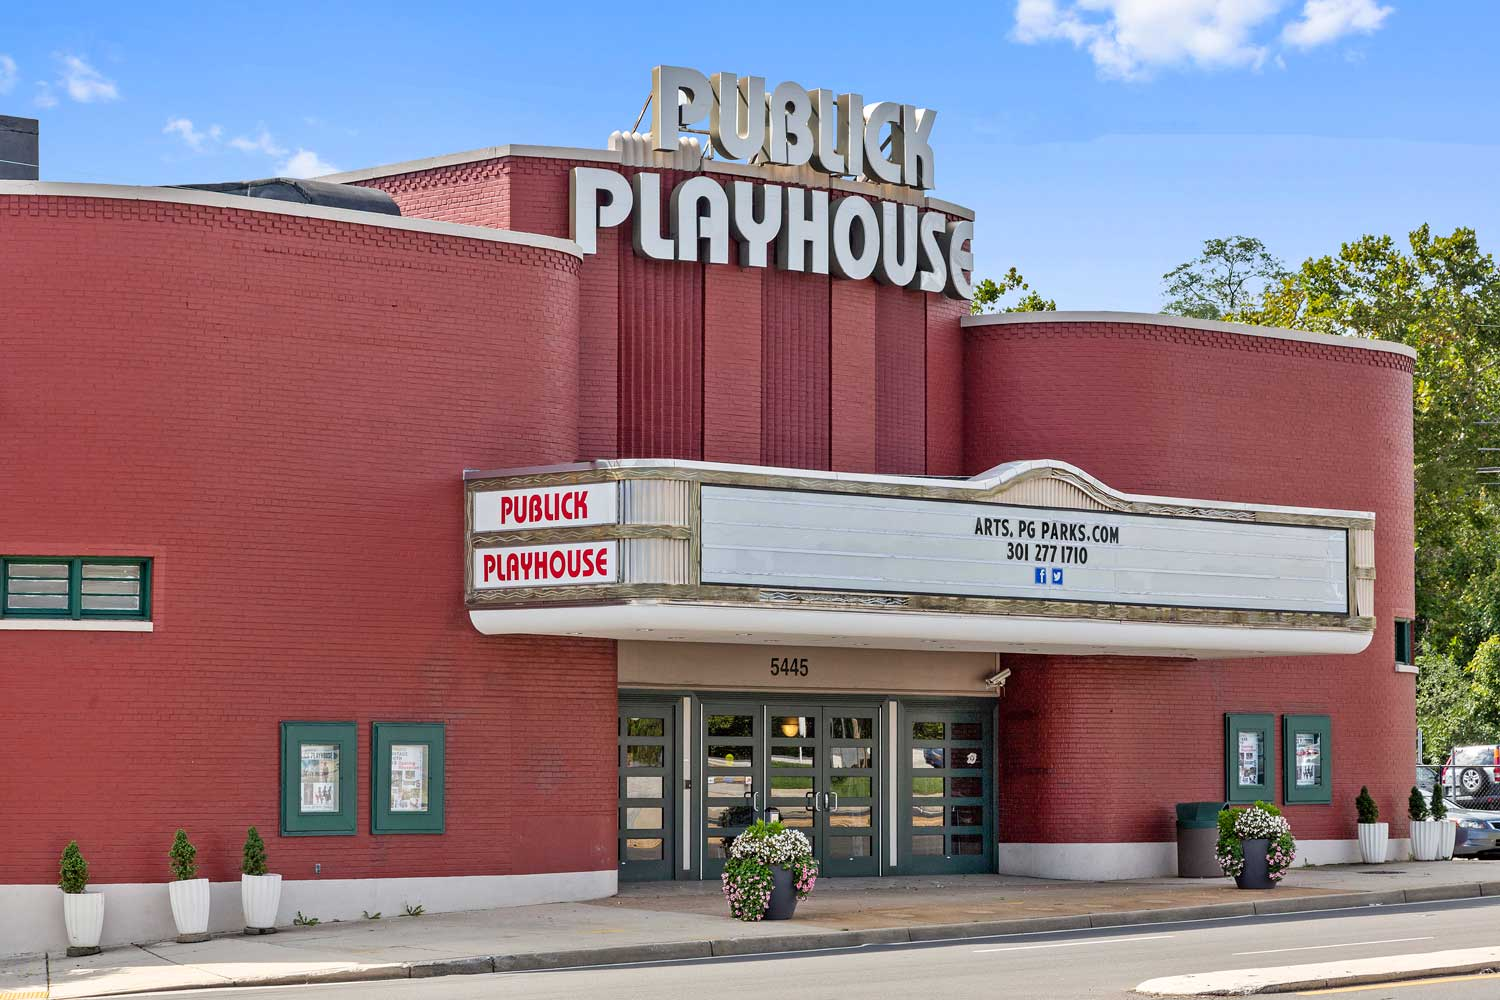 Prince George's Publick Playhouse is 10 minutes from Columbia Park Apartments